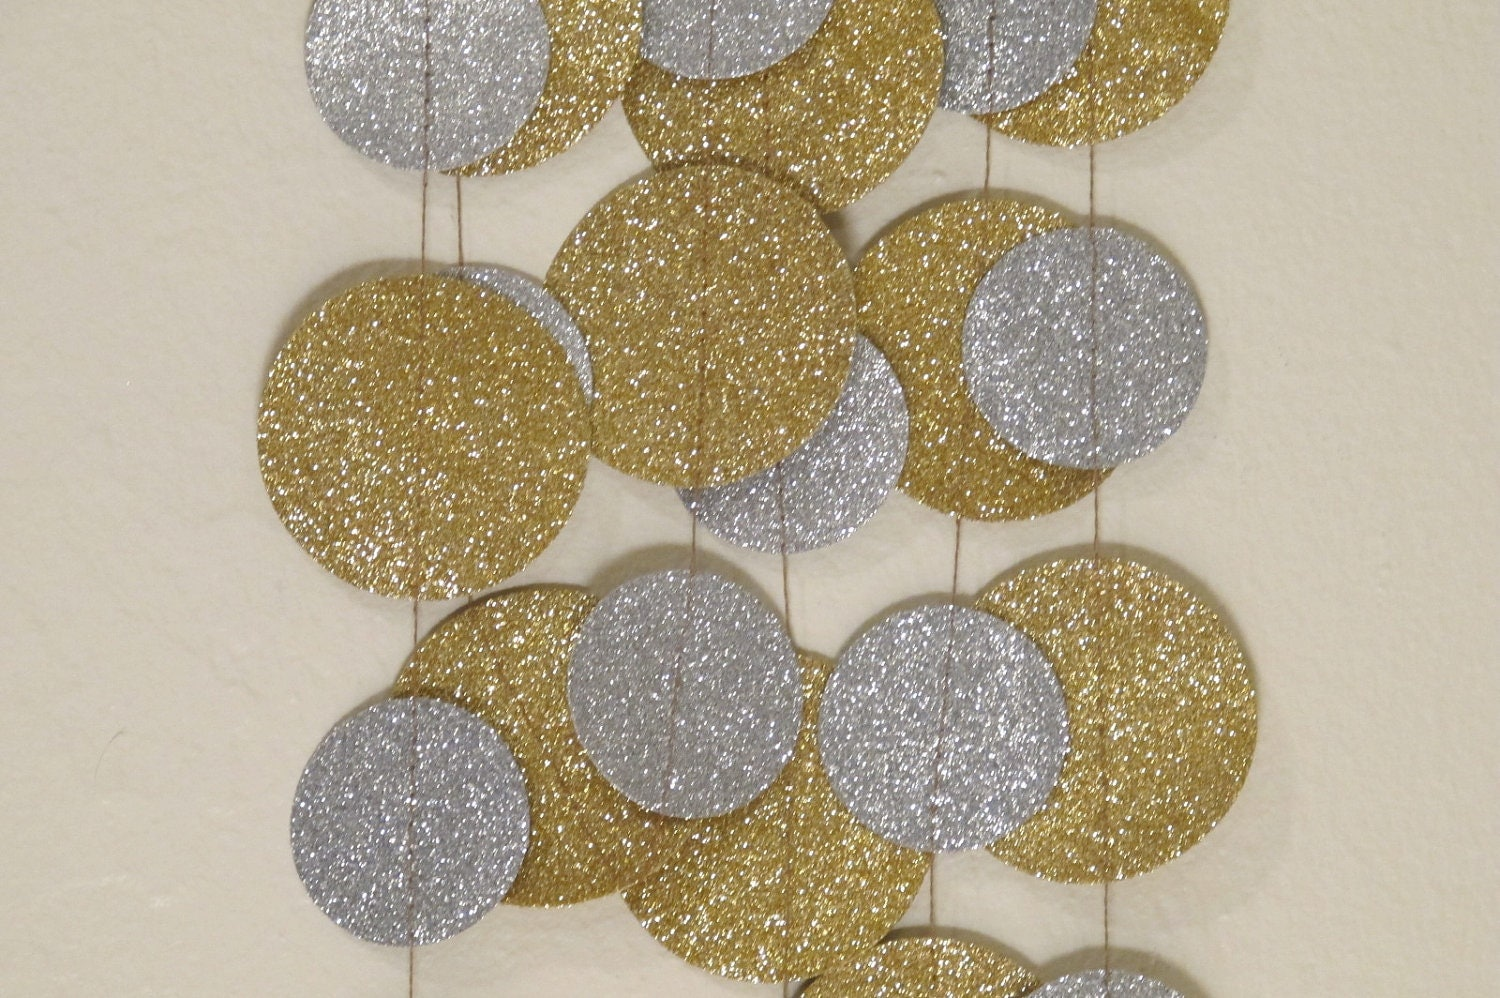 Gold And Silver Glitter Paper Garland Wedding Or Christmas